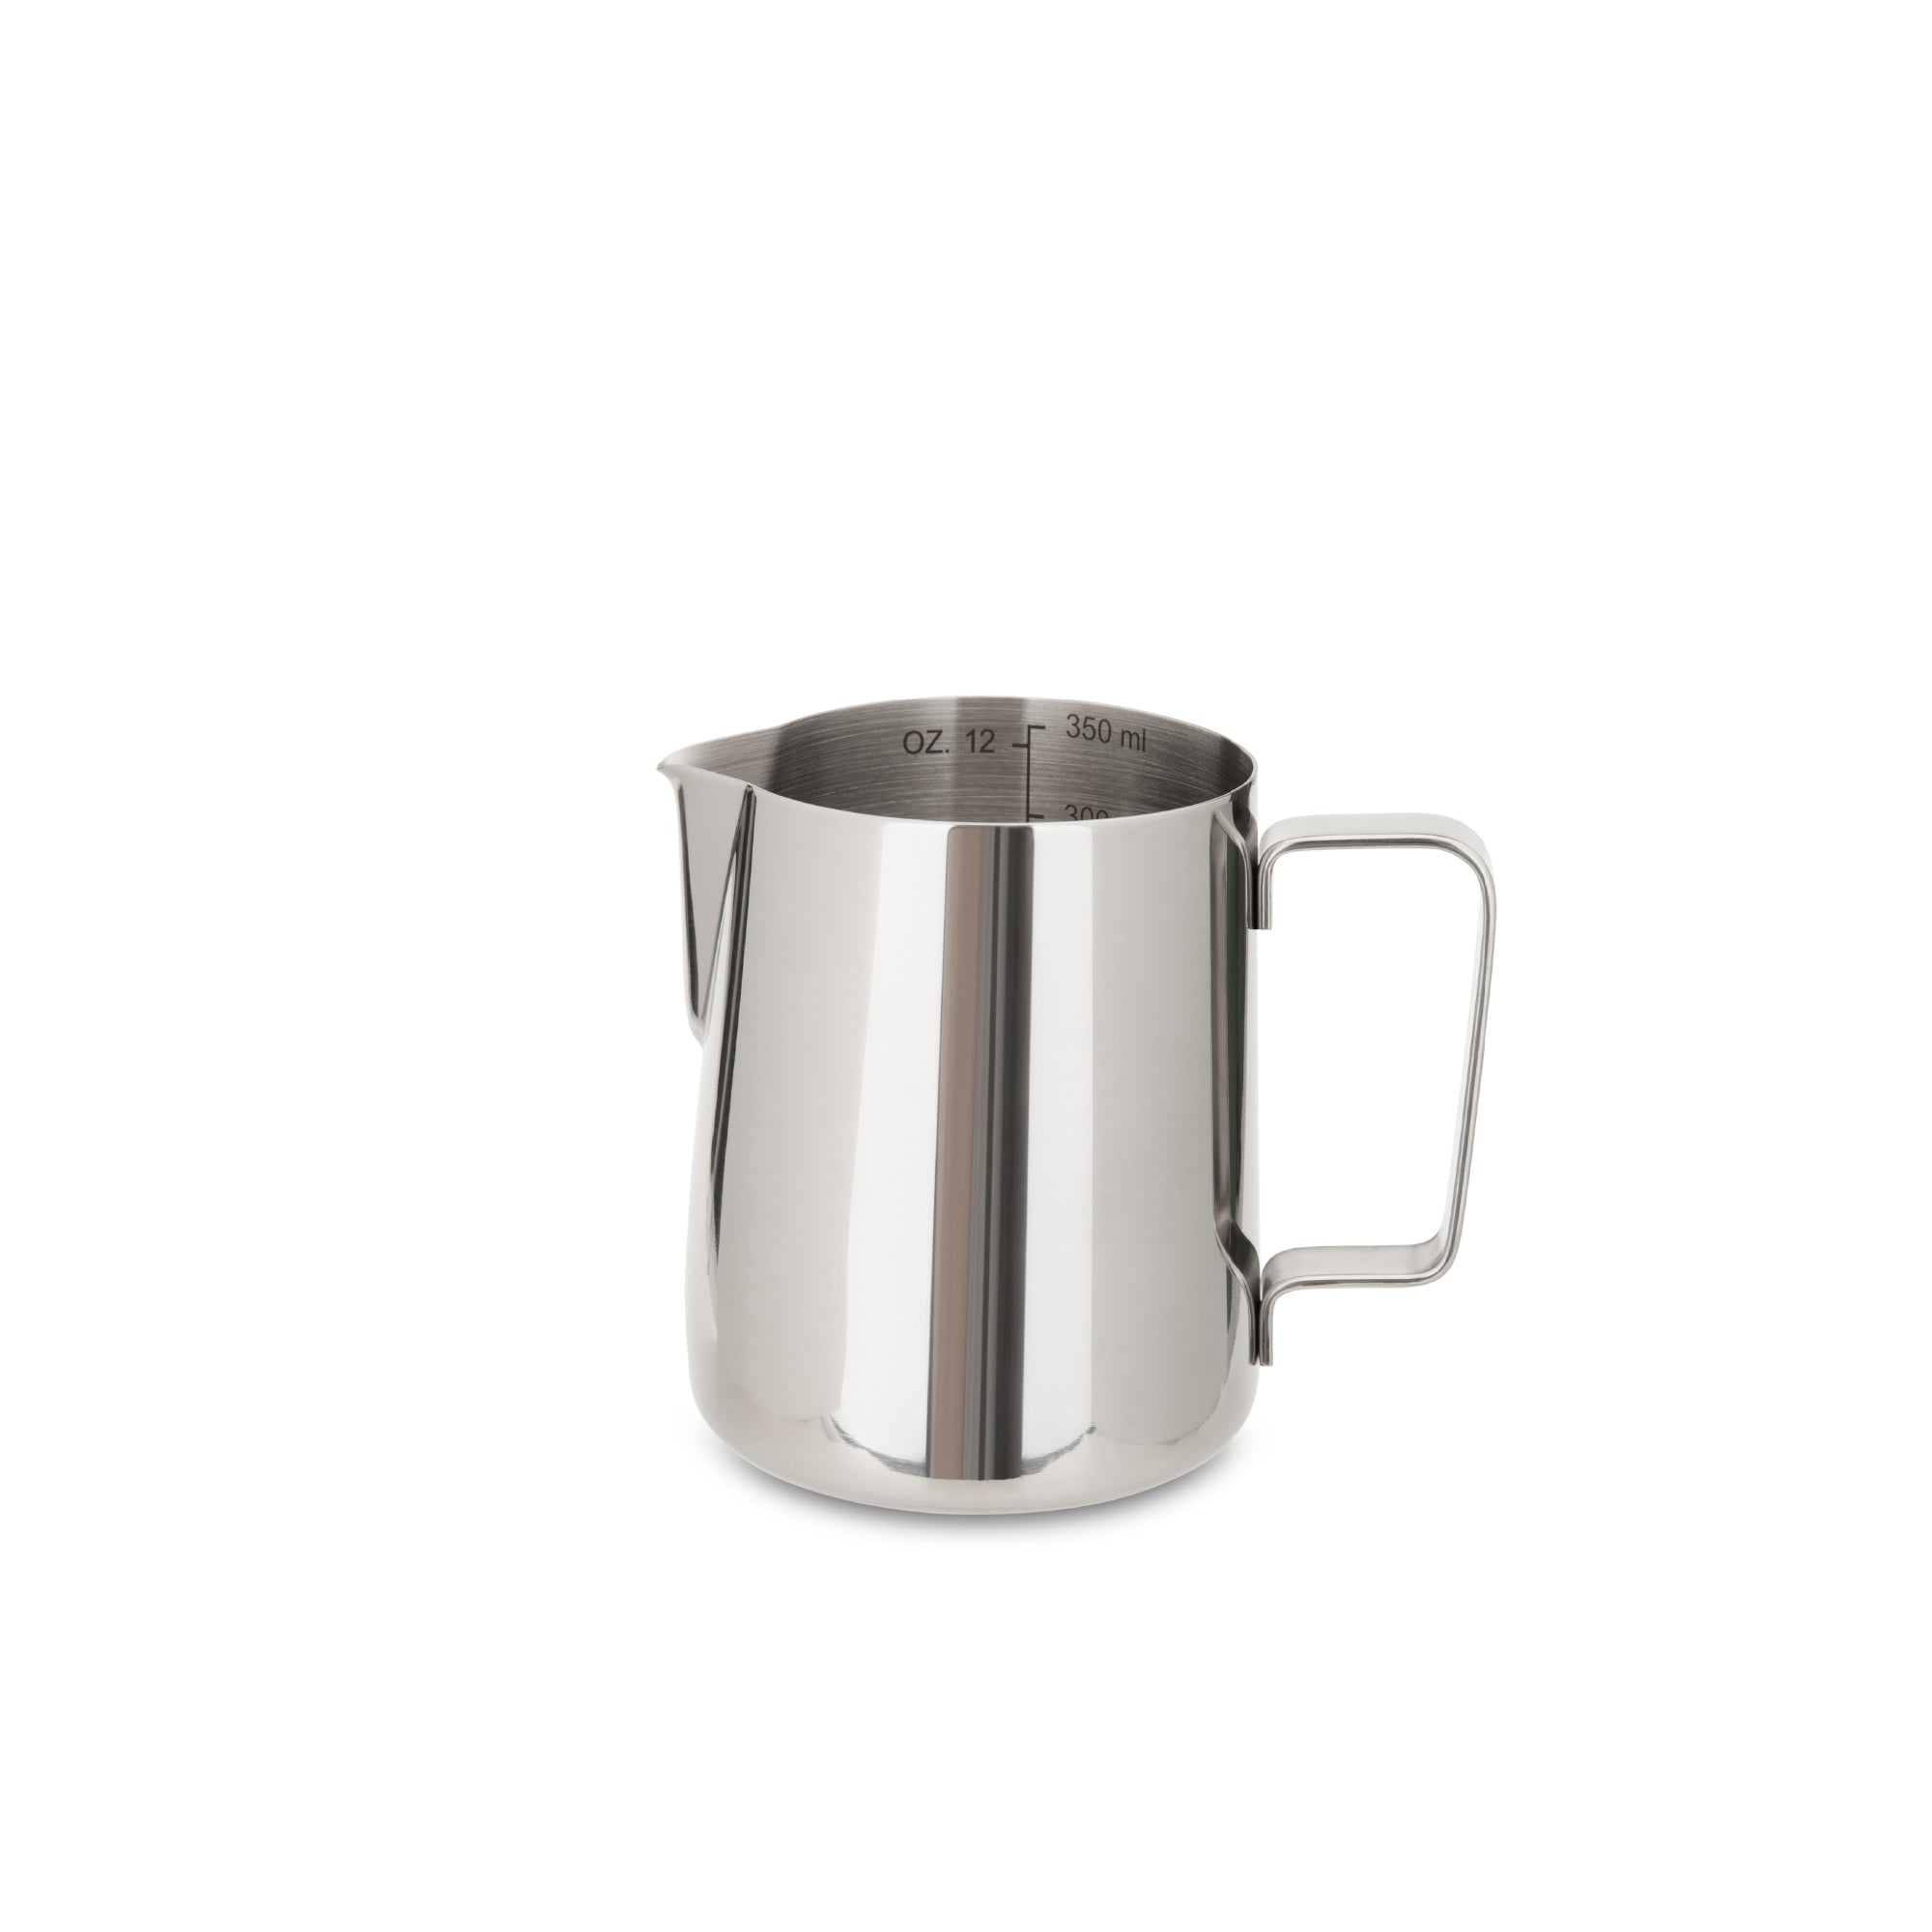 EspressoWorks Stainless Steel Milk Frothing Jug - Stainless Steel (350ml)